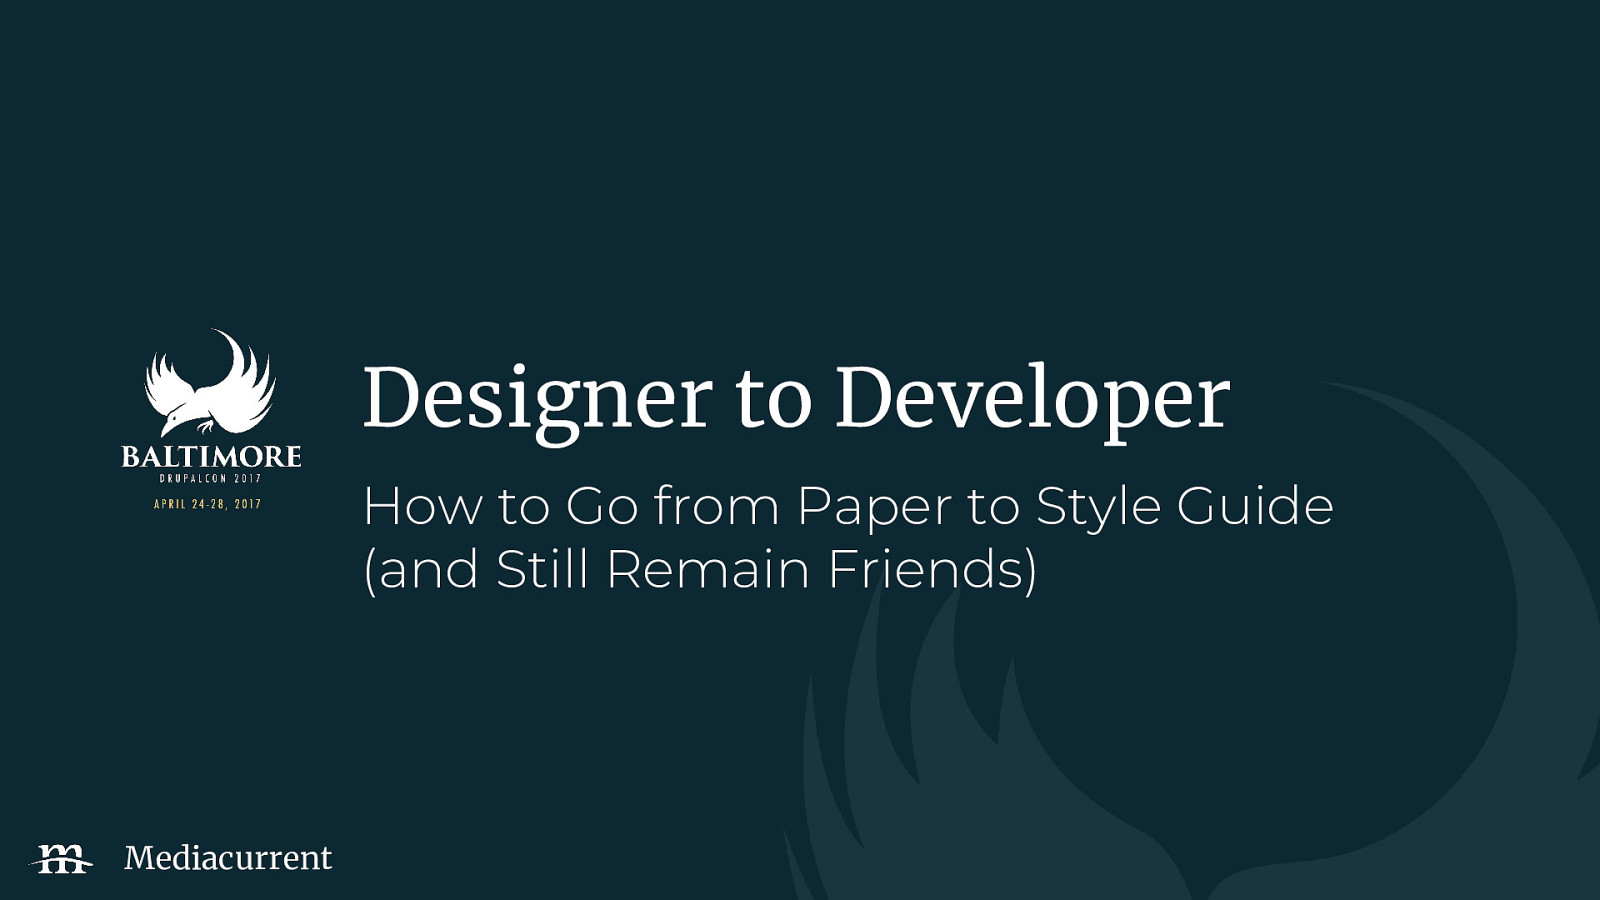 Designer to Developer: How to Go from Paper to Style Guide (and Still Remain Friends)